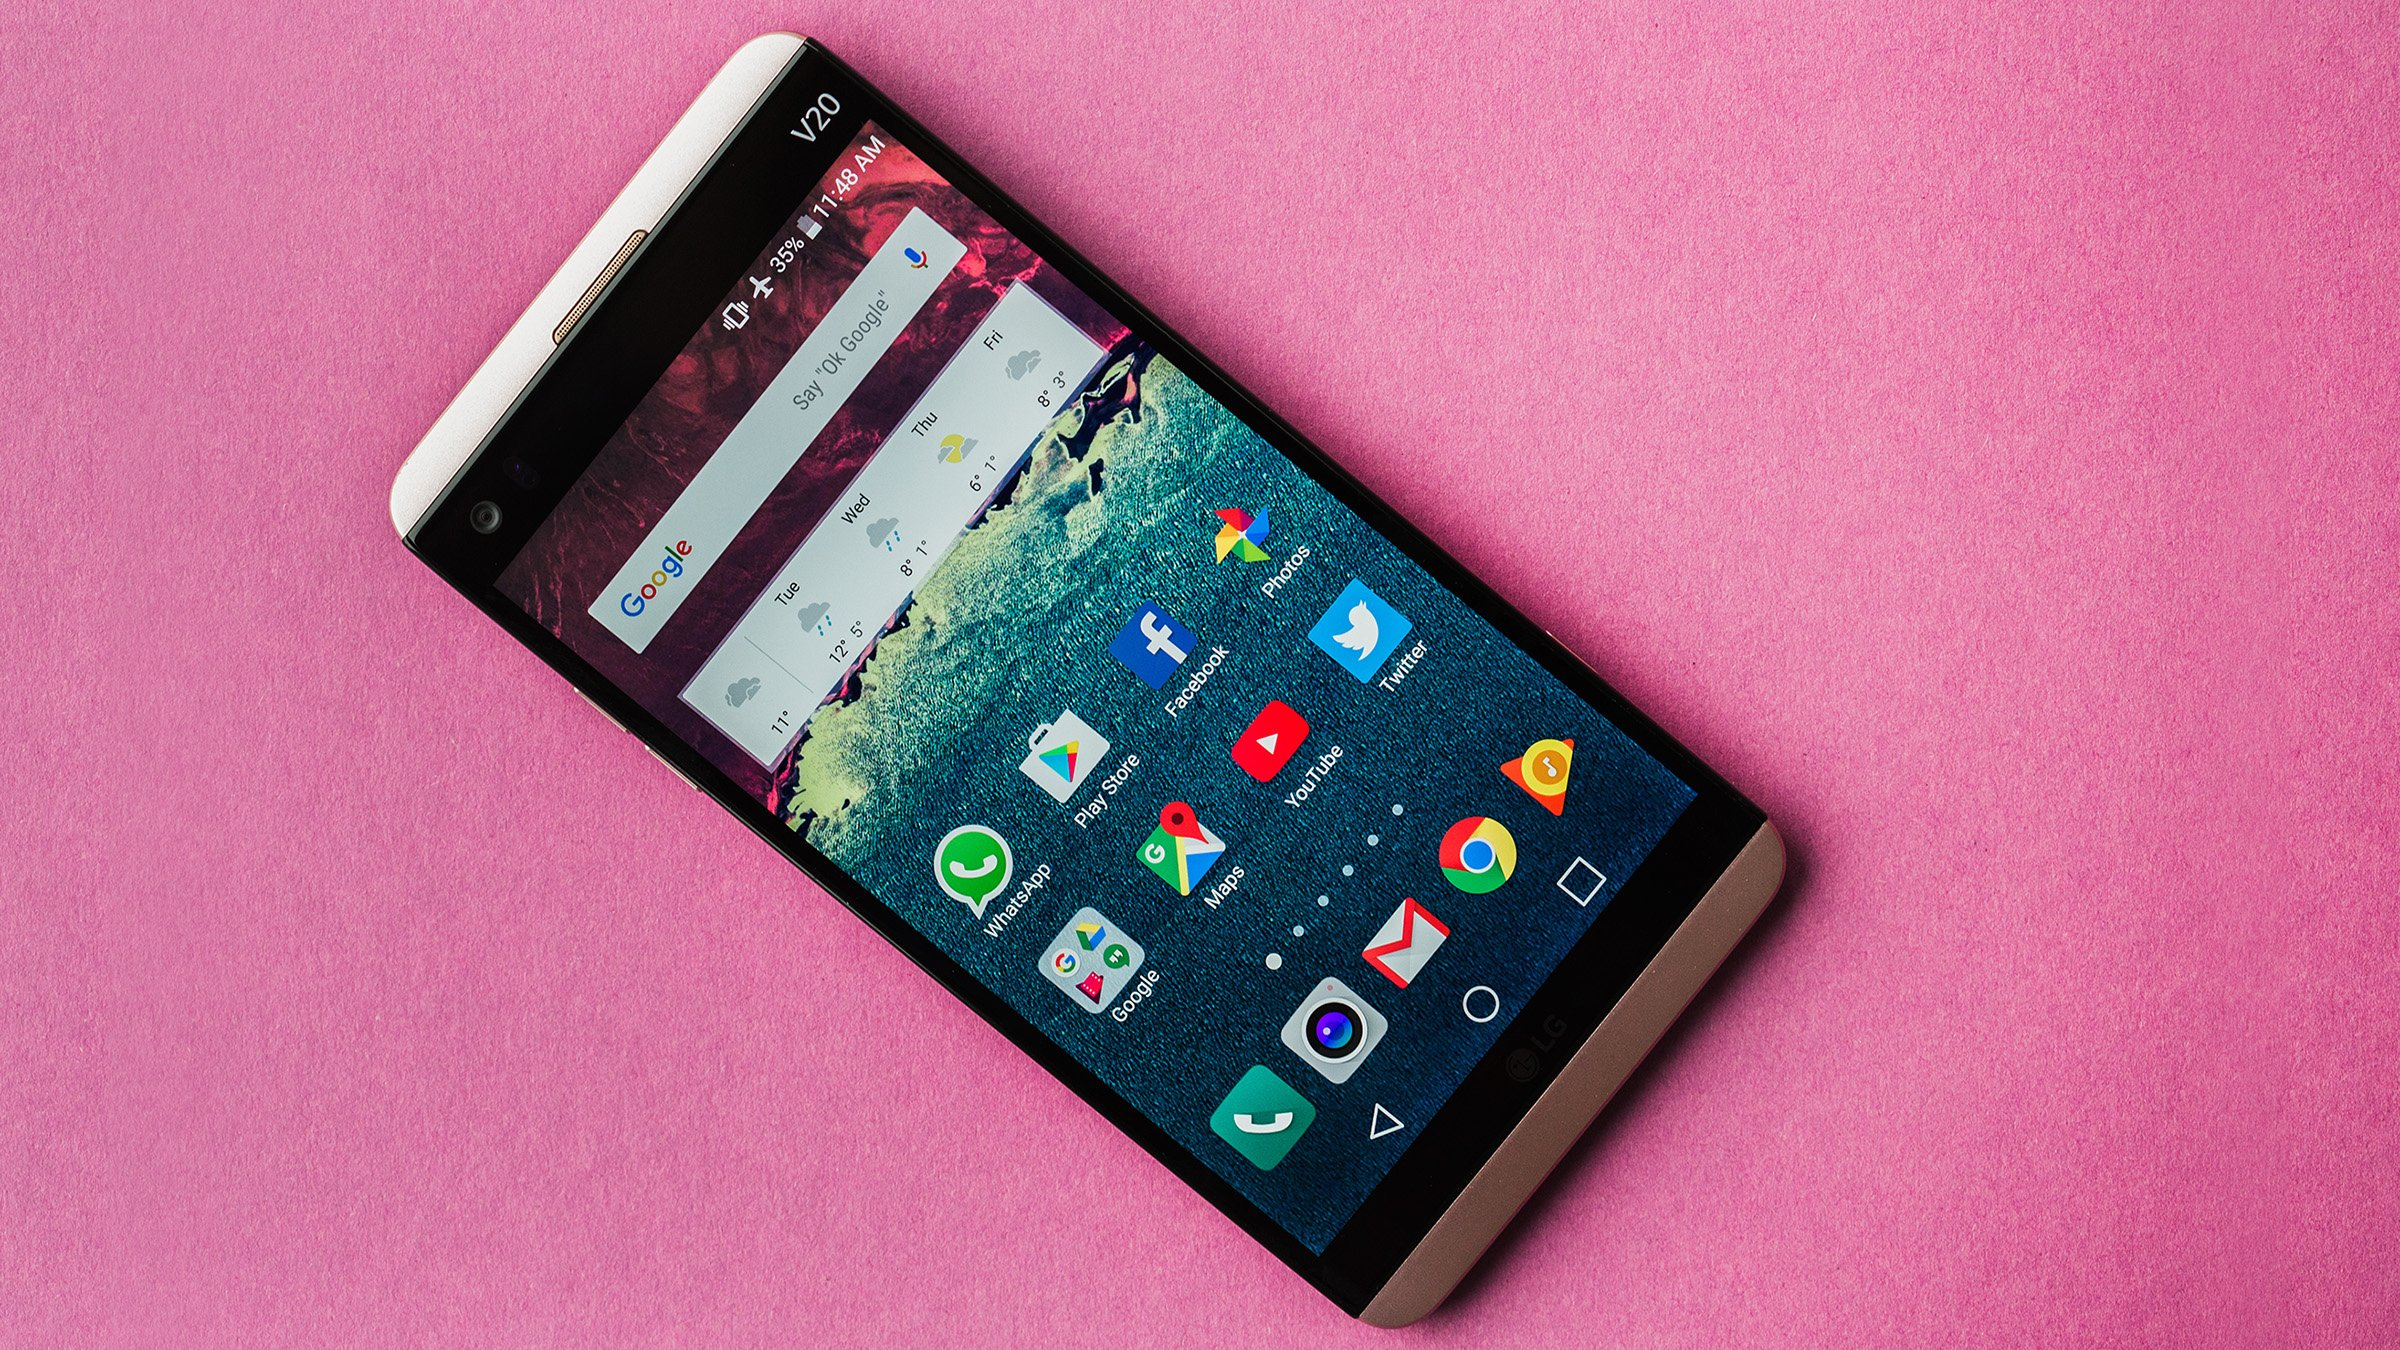 How Do You Unlock An Lg Phone With Google Account